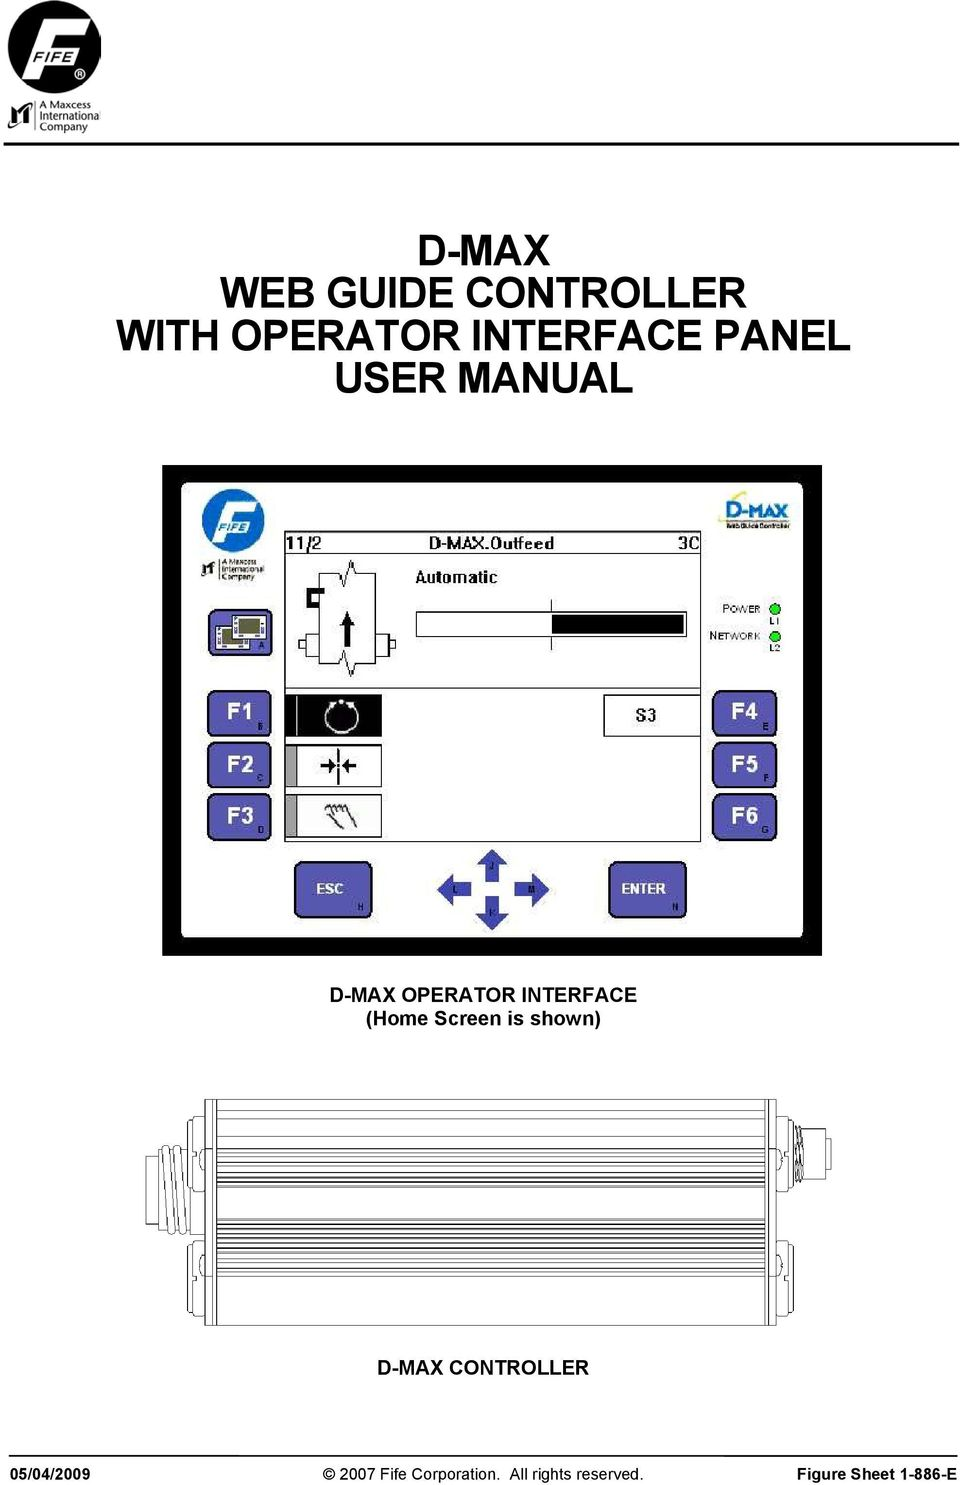 Fife csp-01 controller and web guide.